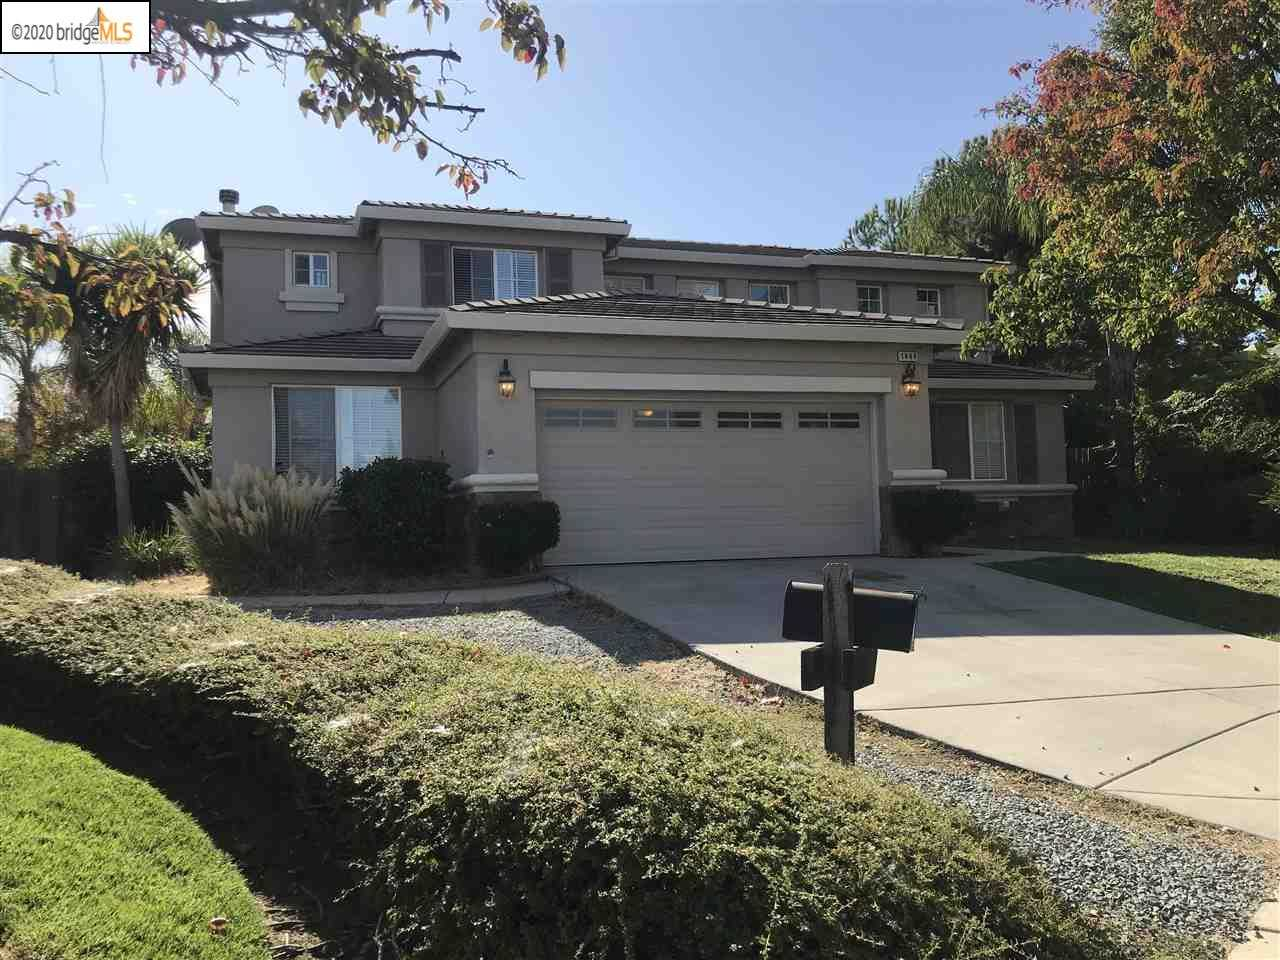 $625,000 - 5Br/3Ba -  for Sale in Sterling Vista, Antioch